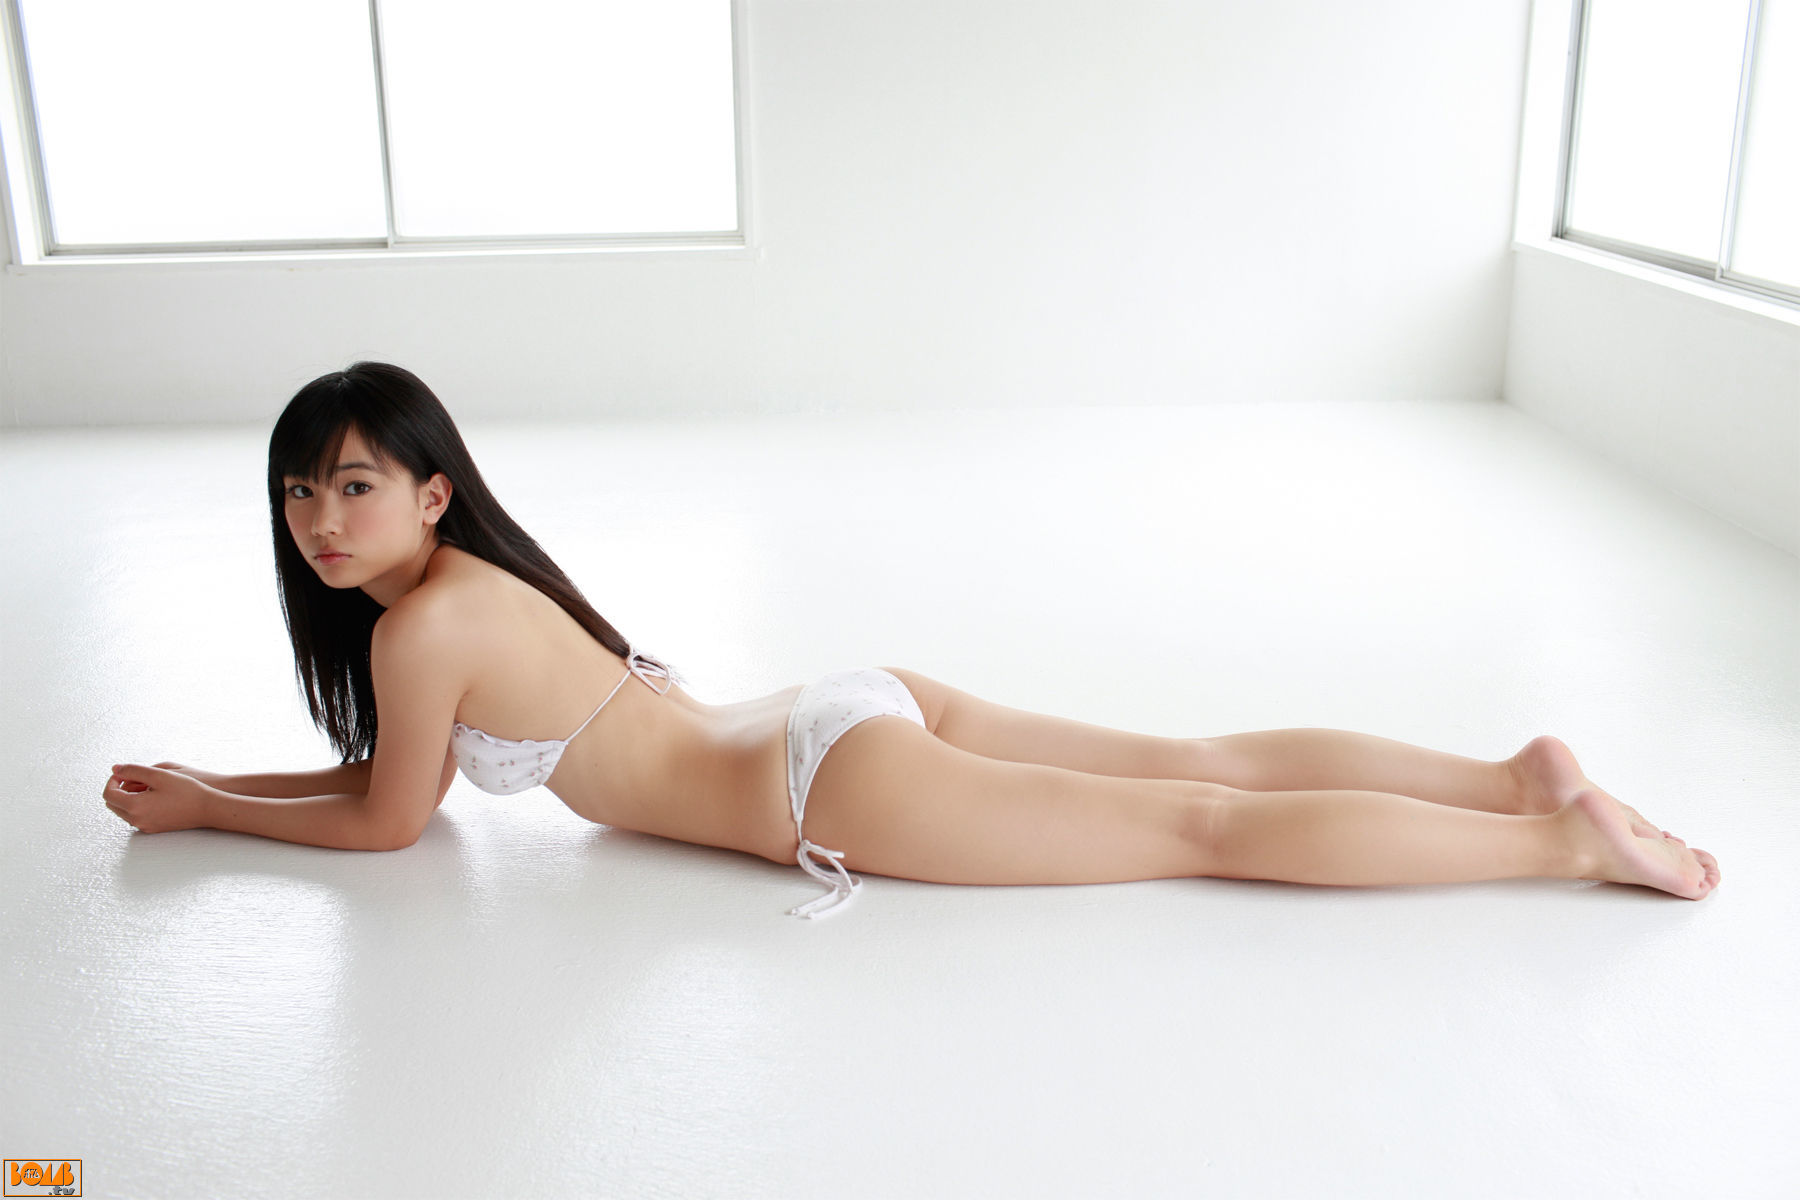 The ultimate swimsuit gravure for the next generation028